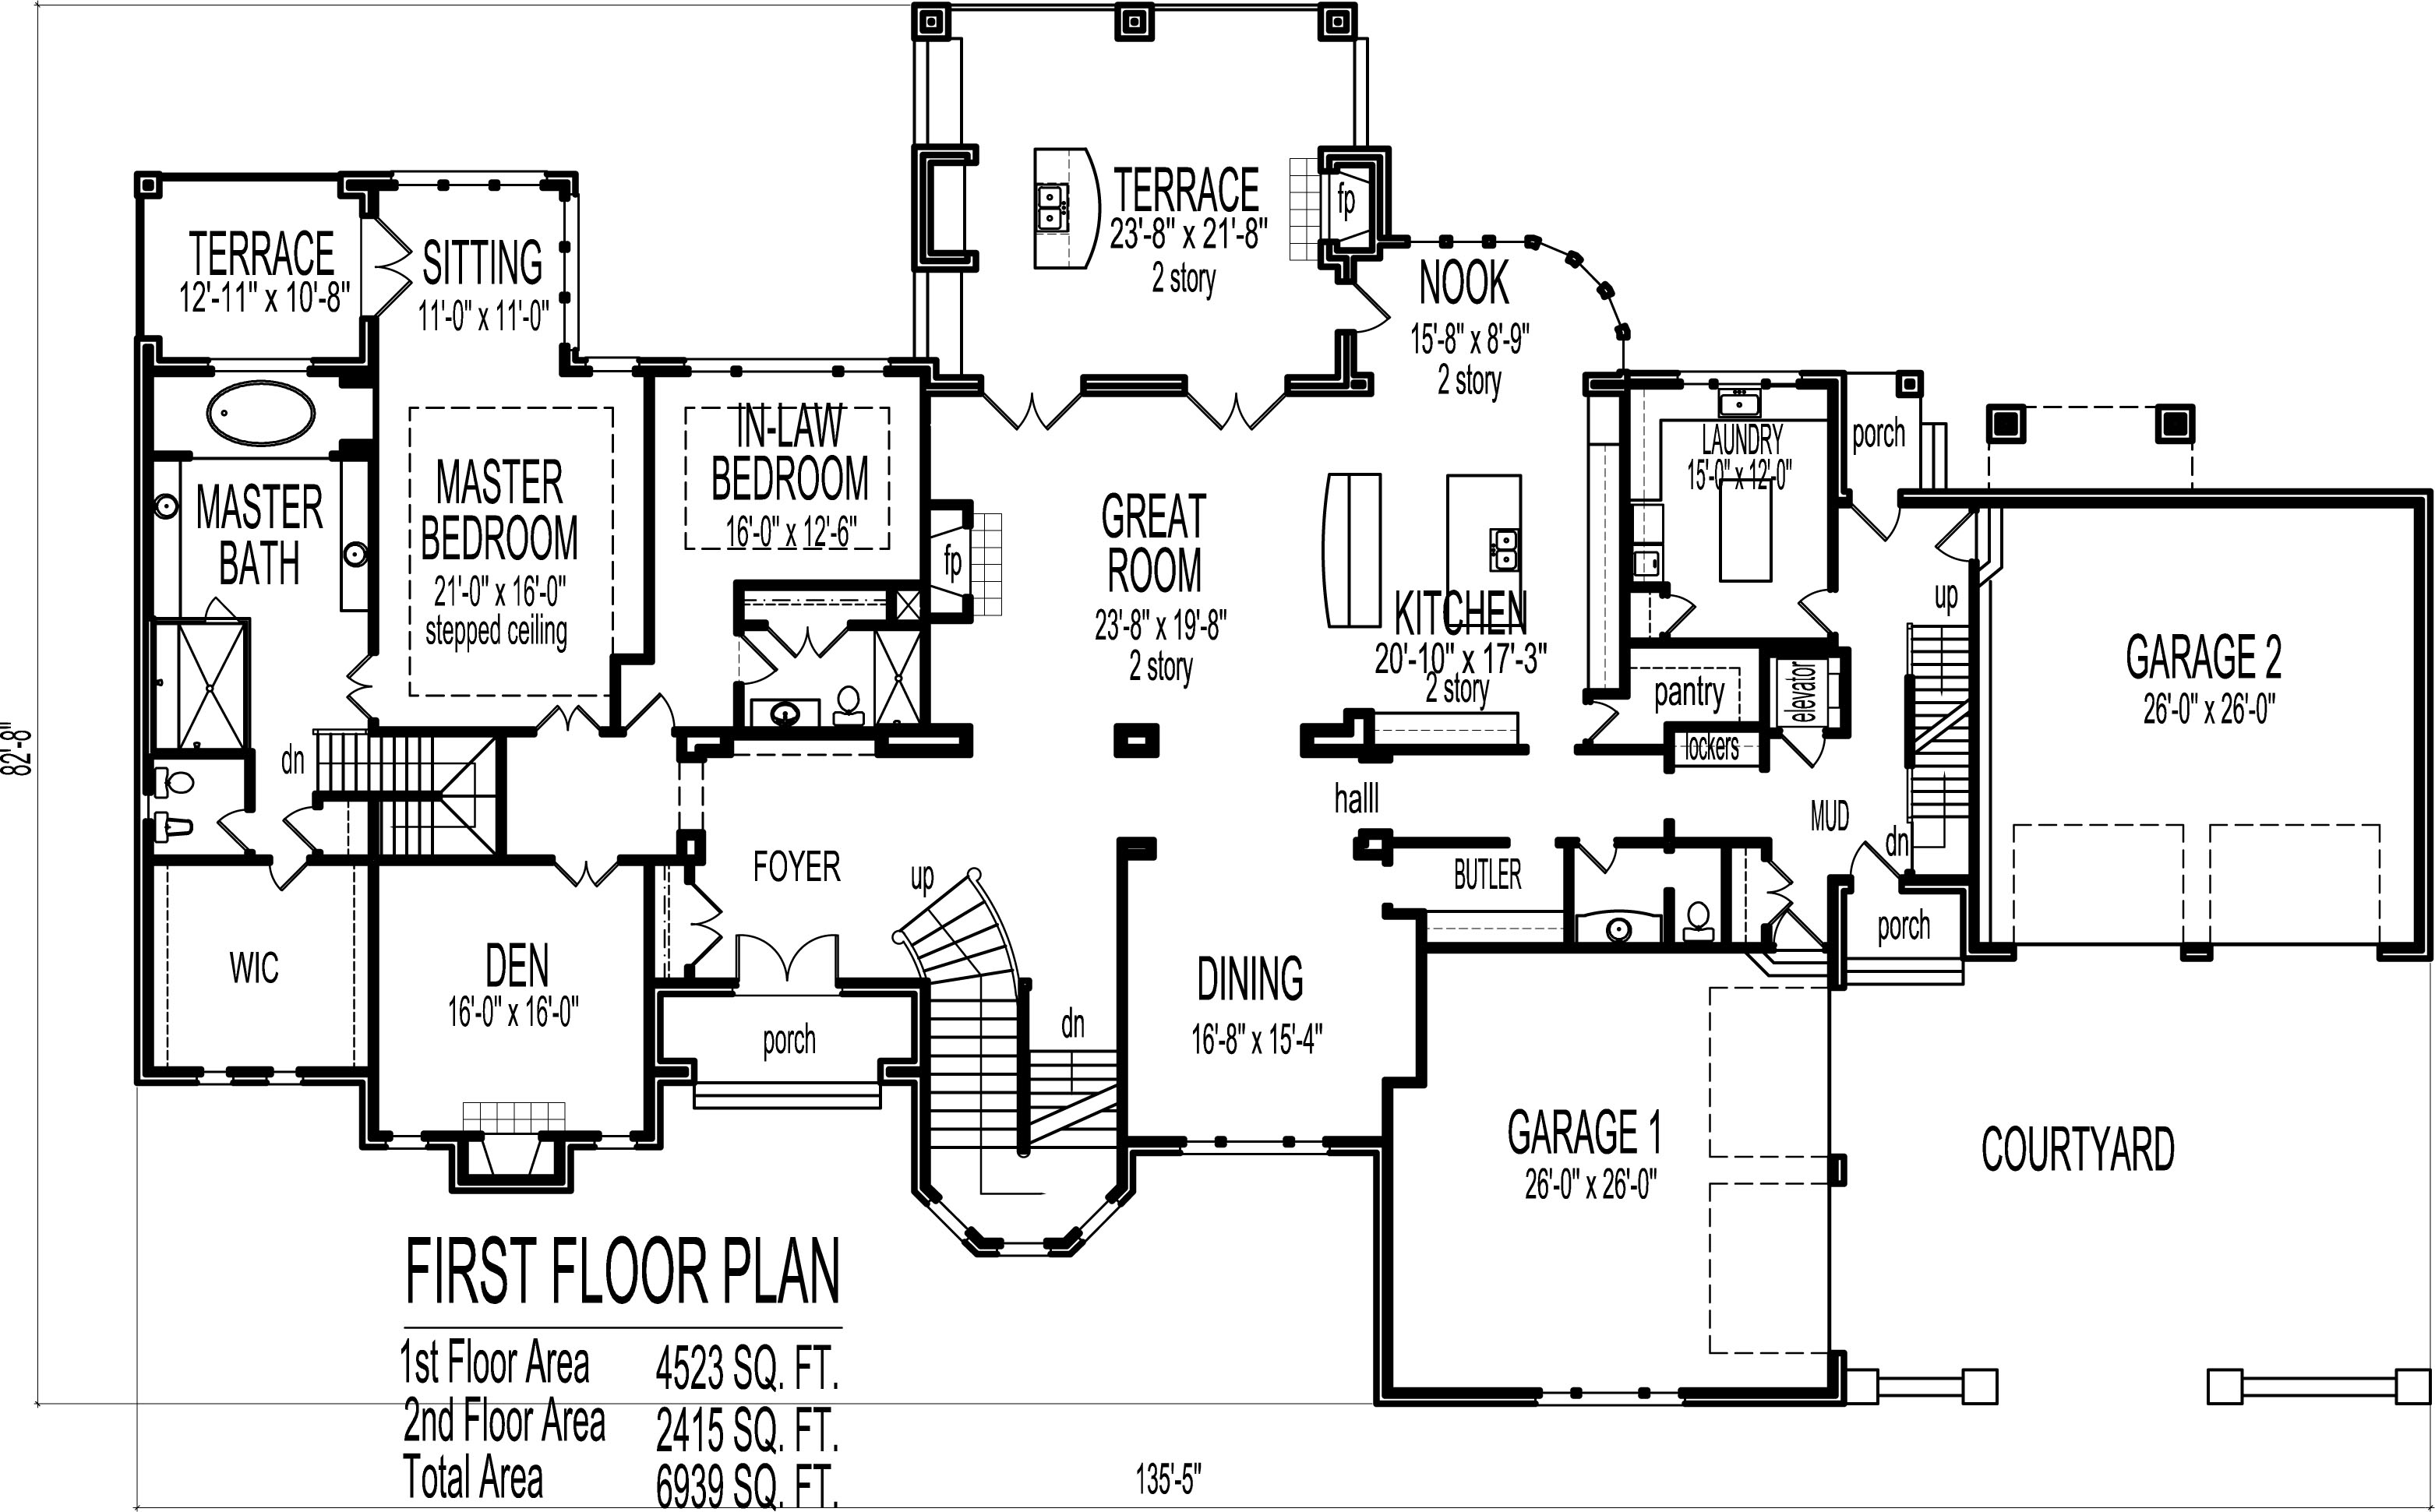 Mansion house floor plans blueprints 6 bedroom 2 story for 6 bedroom home designs